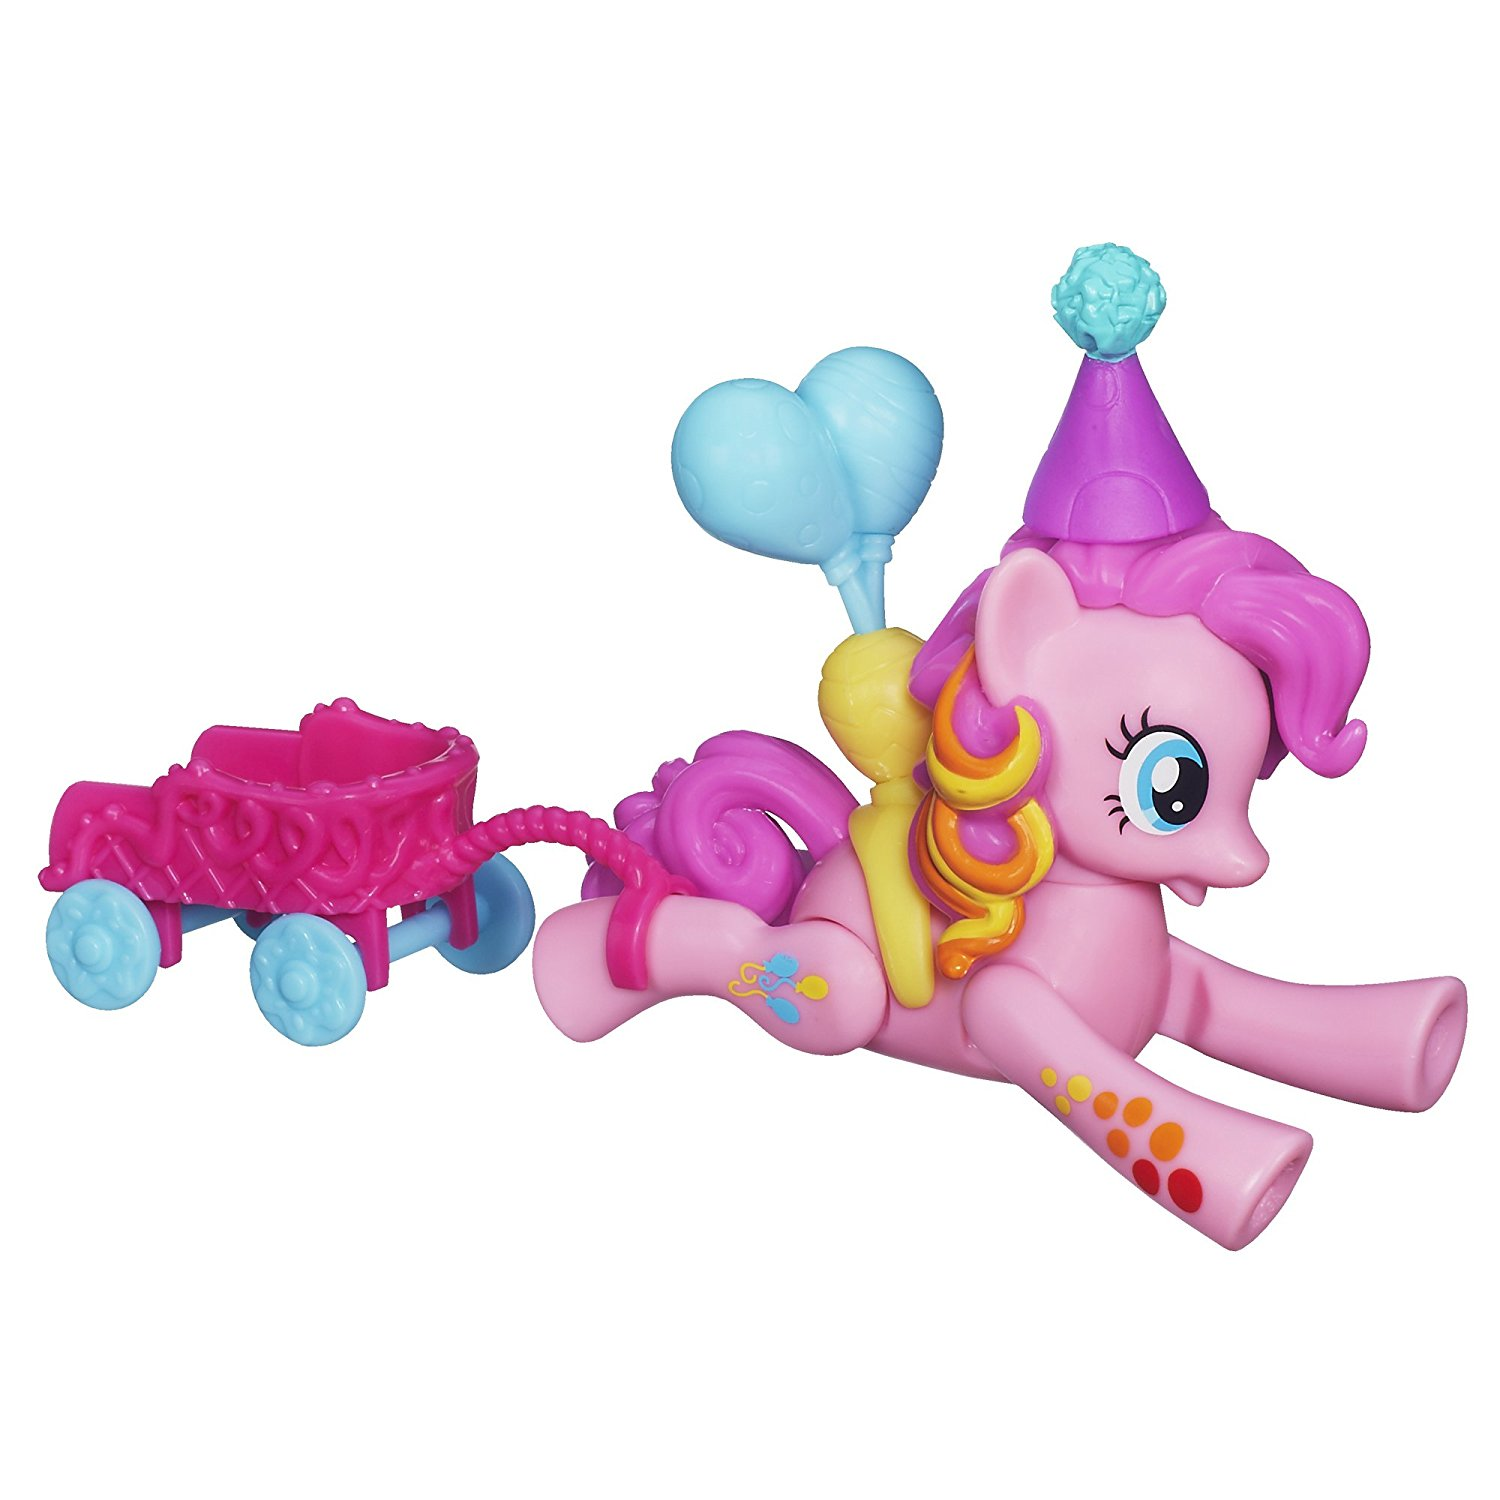 Zoom n Go Pinkie Pie Doll, Pinkie Pie figure has balloons By My Little Pony Ship from US